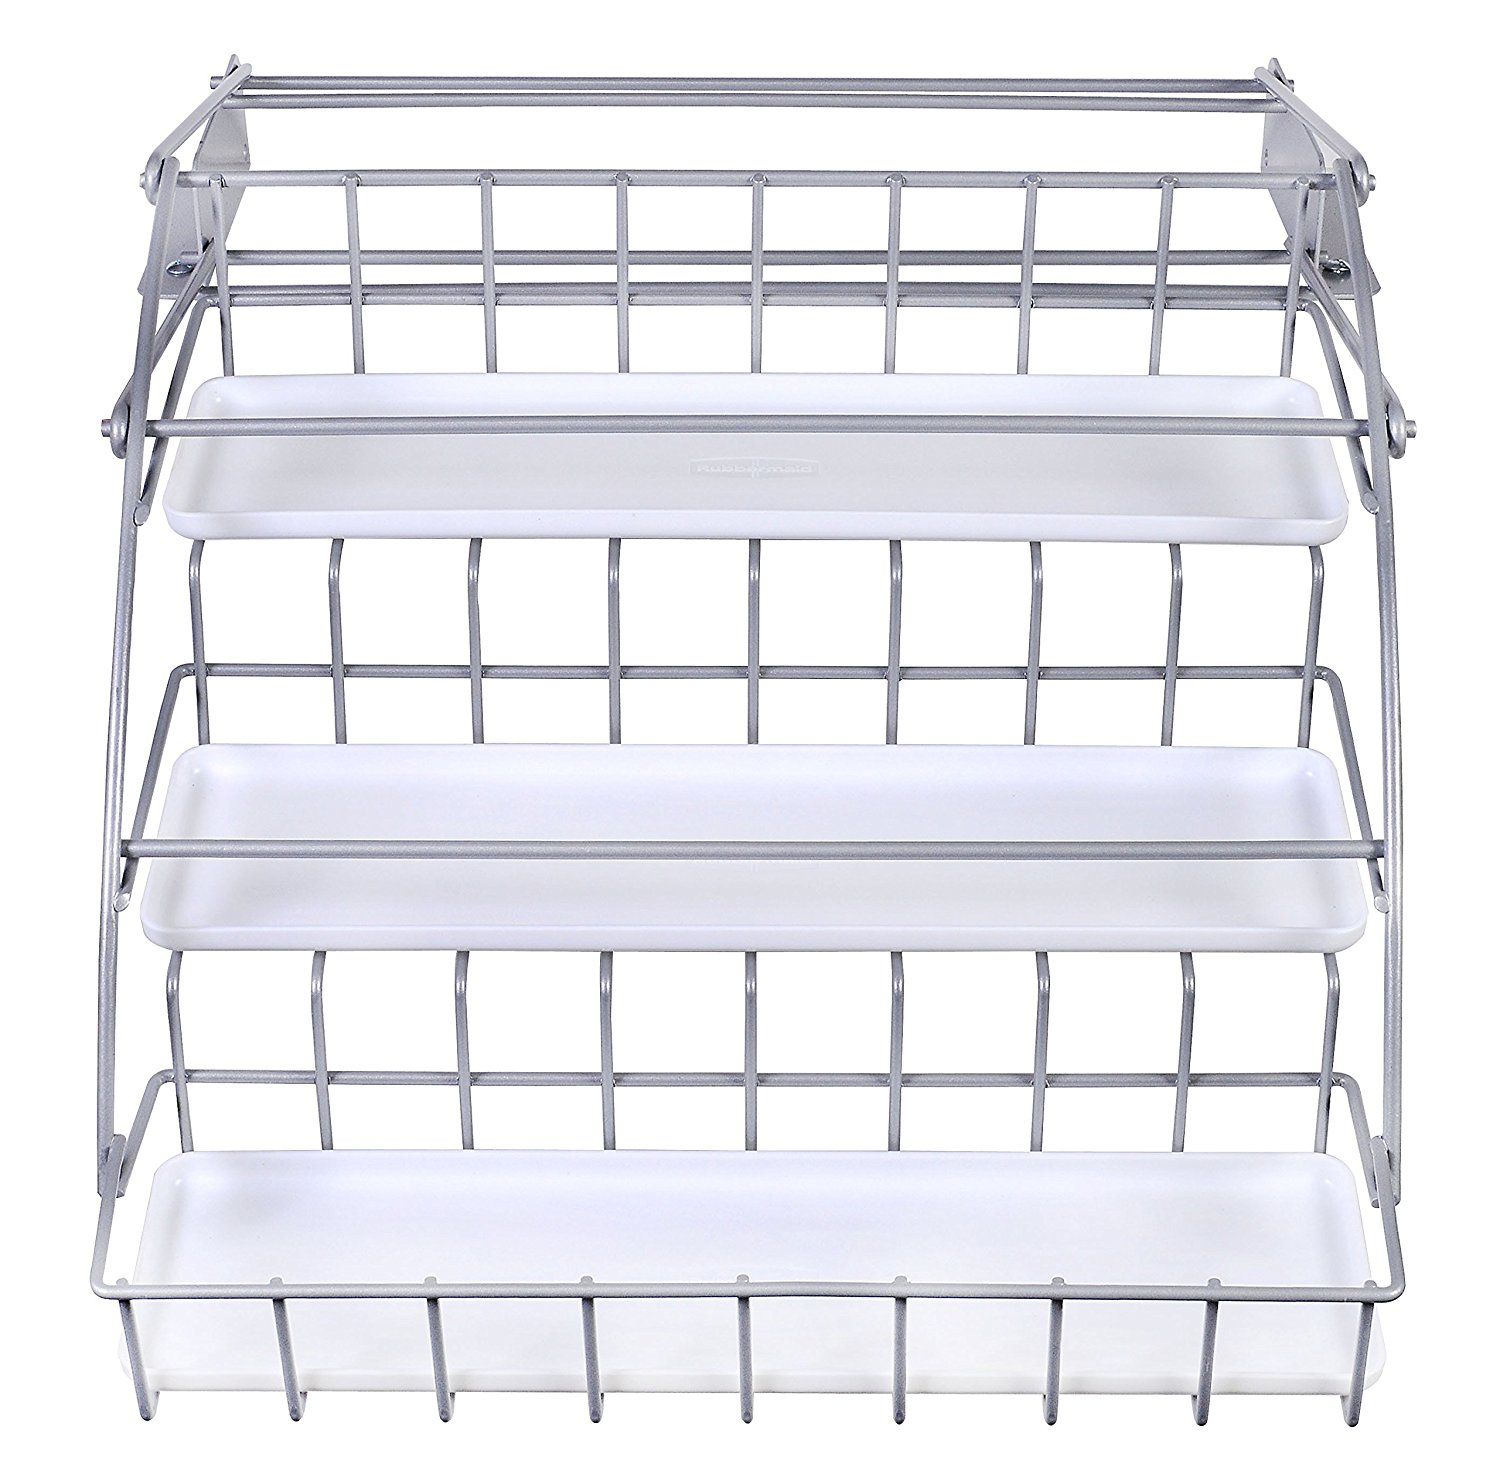 Rubbermaid Pull Down White Spice Rack and Satin Nickel, C...